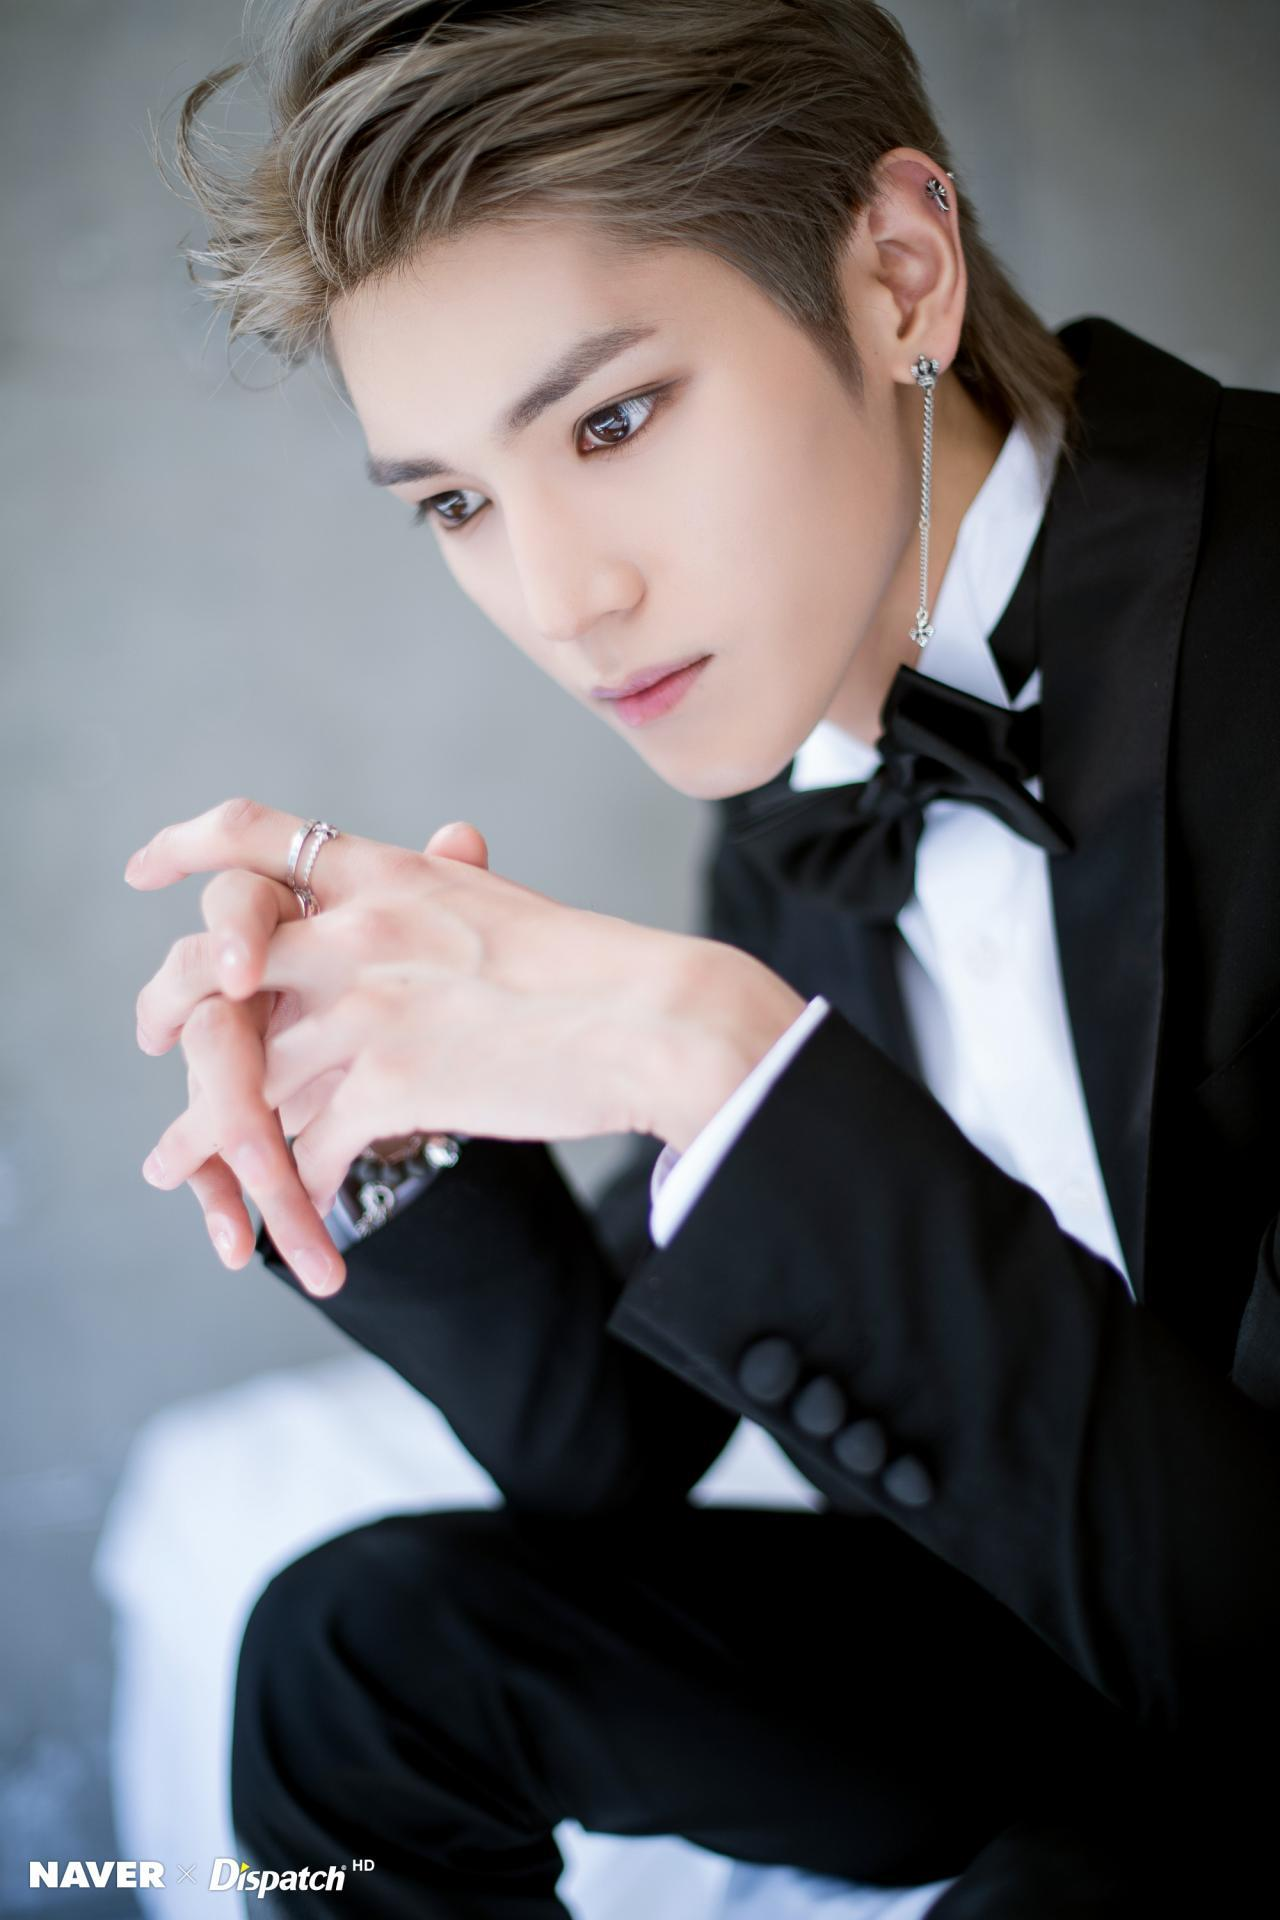 NCT U images Taeyong HD wallpaper and background photos 41616583 1280x1920